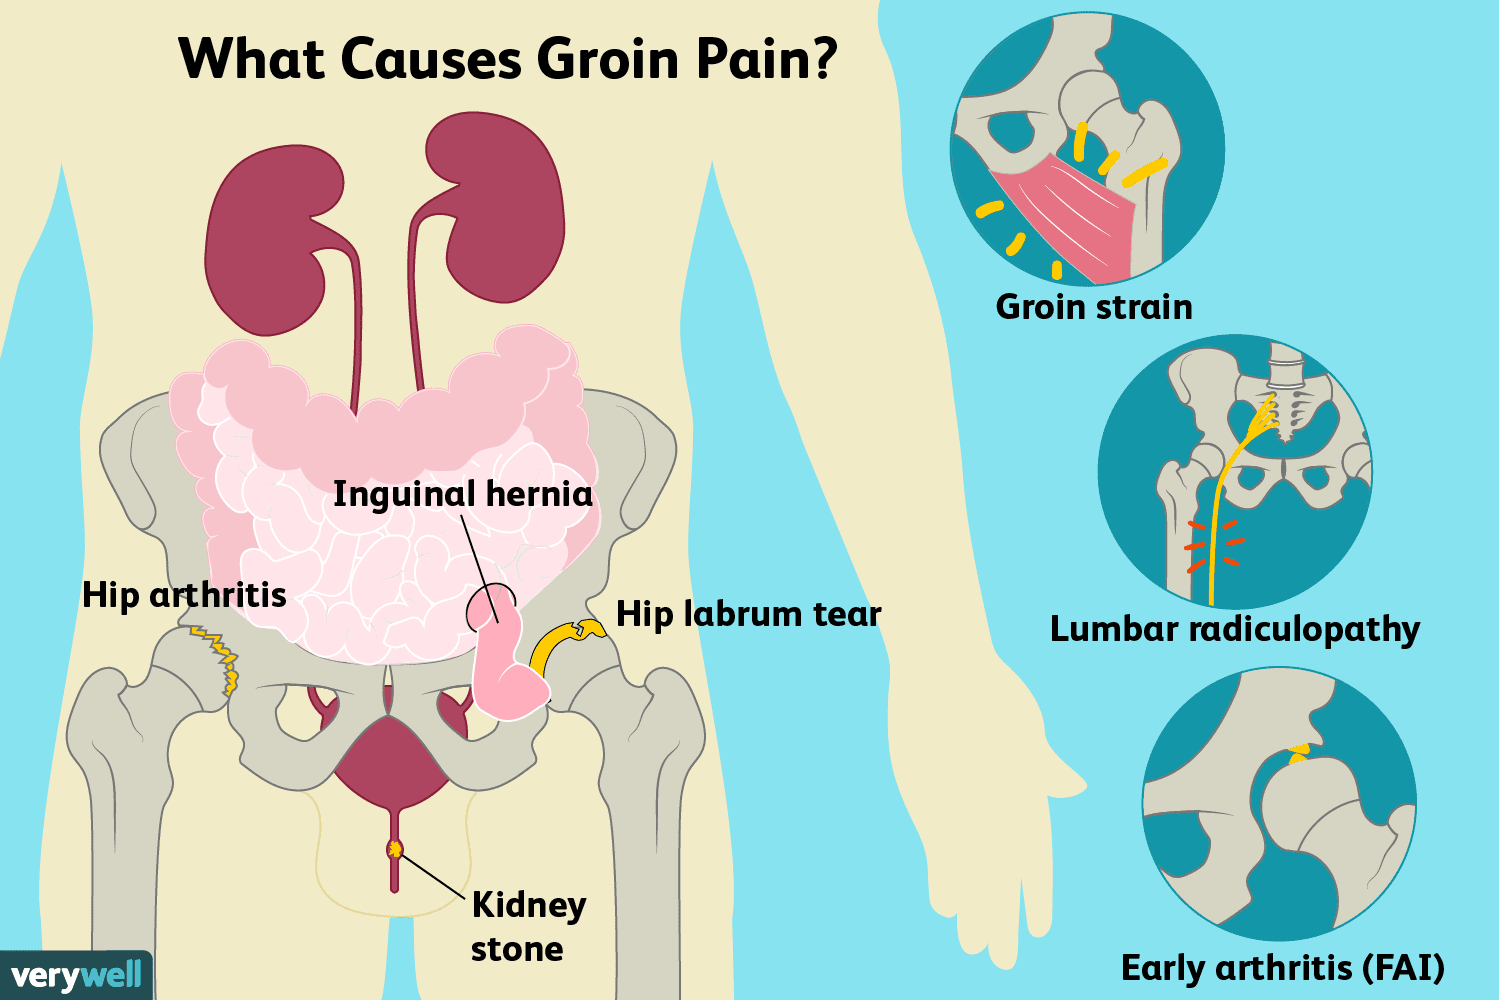 Groin Pain: Causes, Treatment, and When to See a Doctor